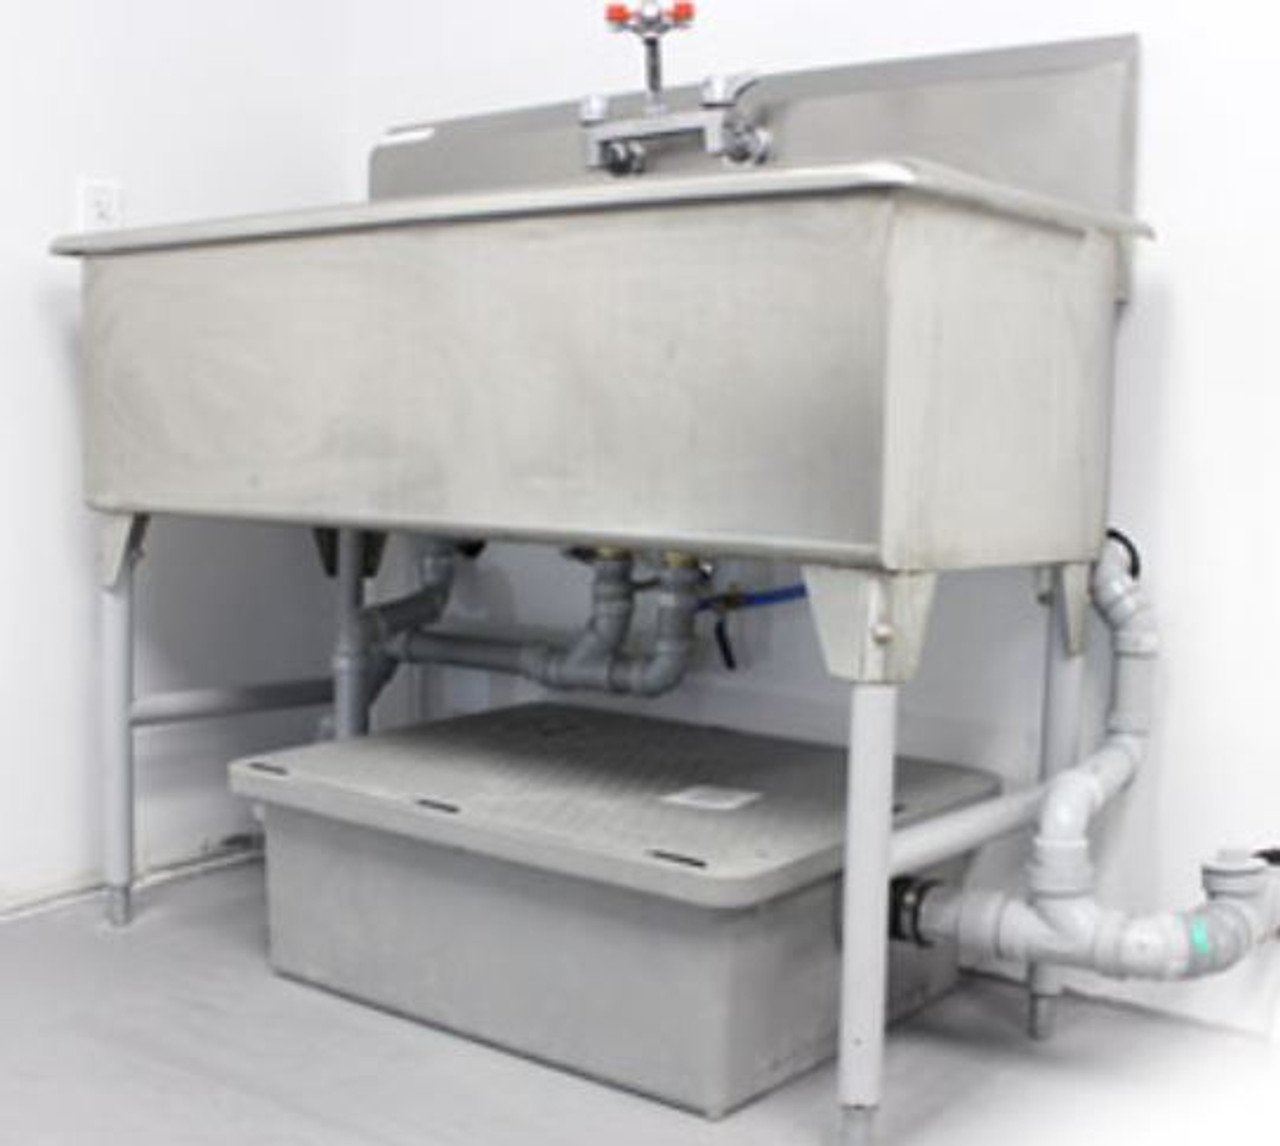 Low Boy grease interceptor for under compartment sink